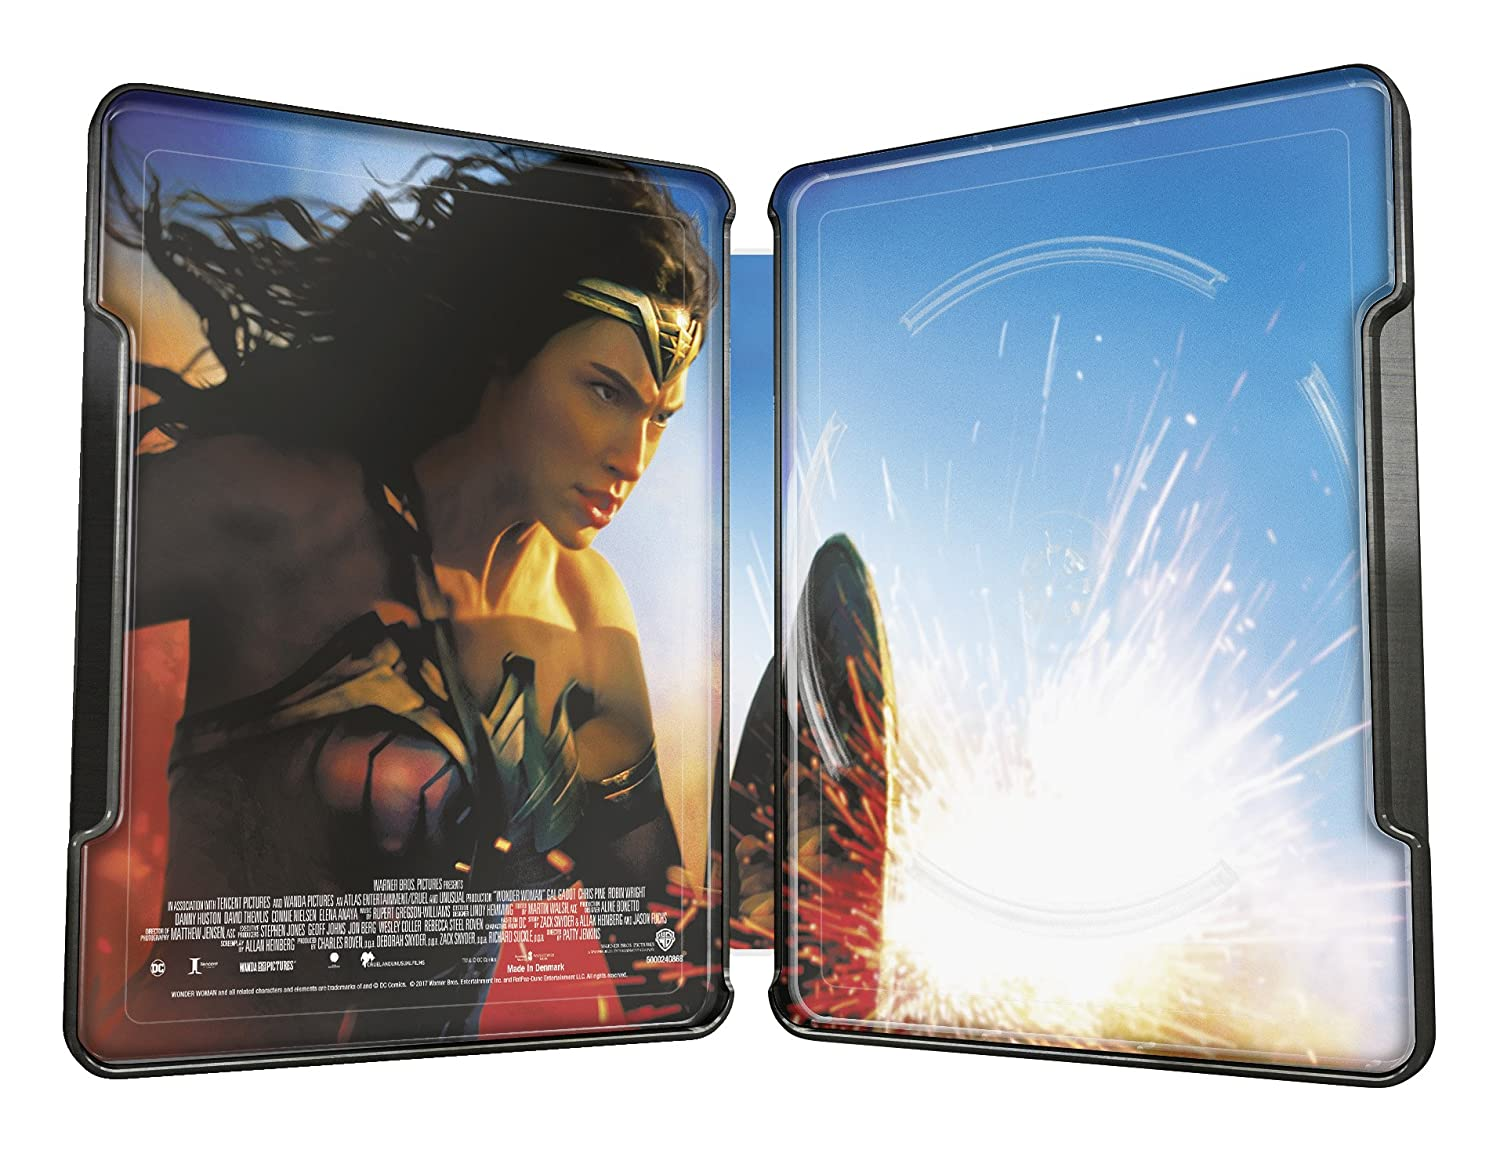 De Wonder Woman Steelbook Amazon De 4k 2d